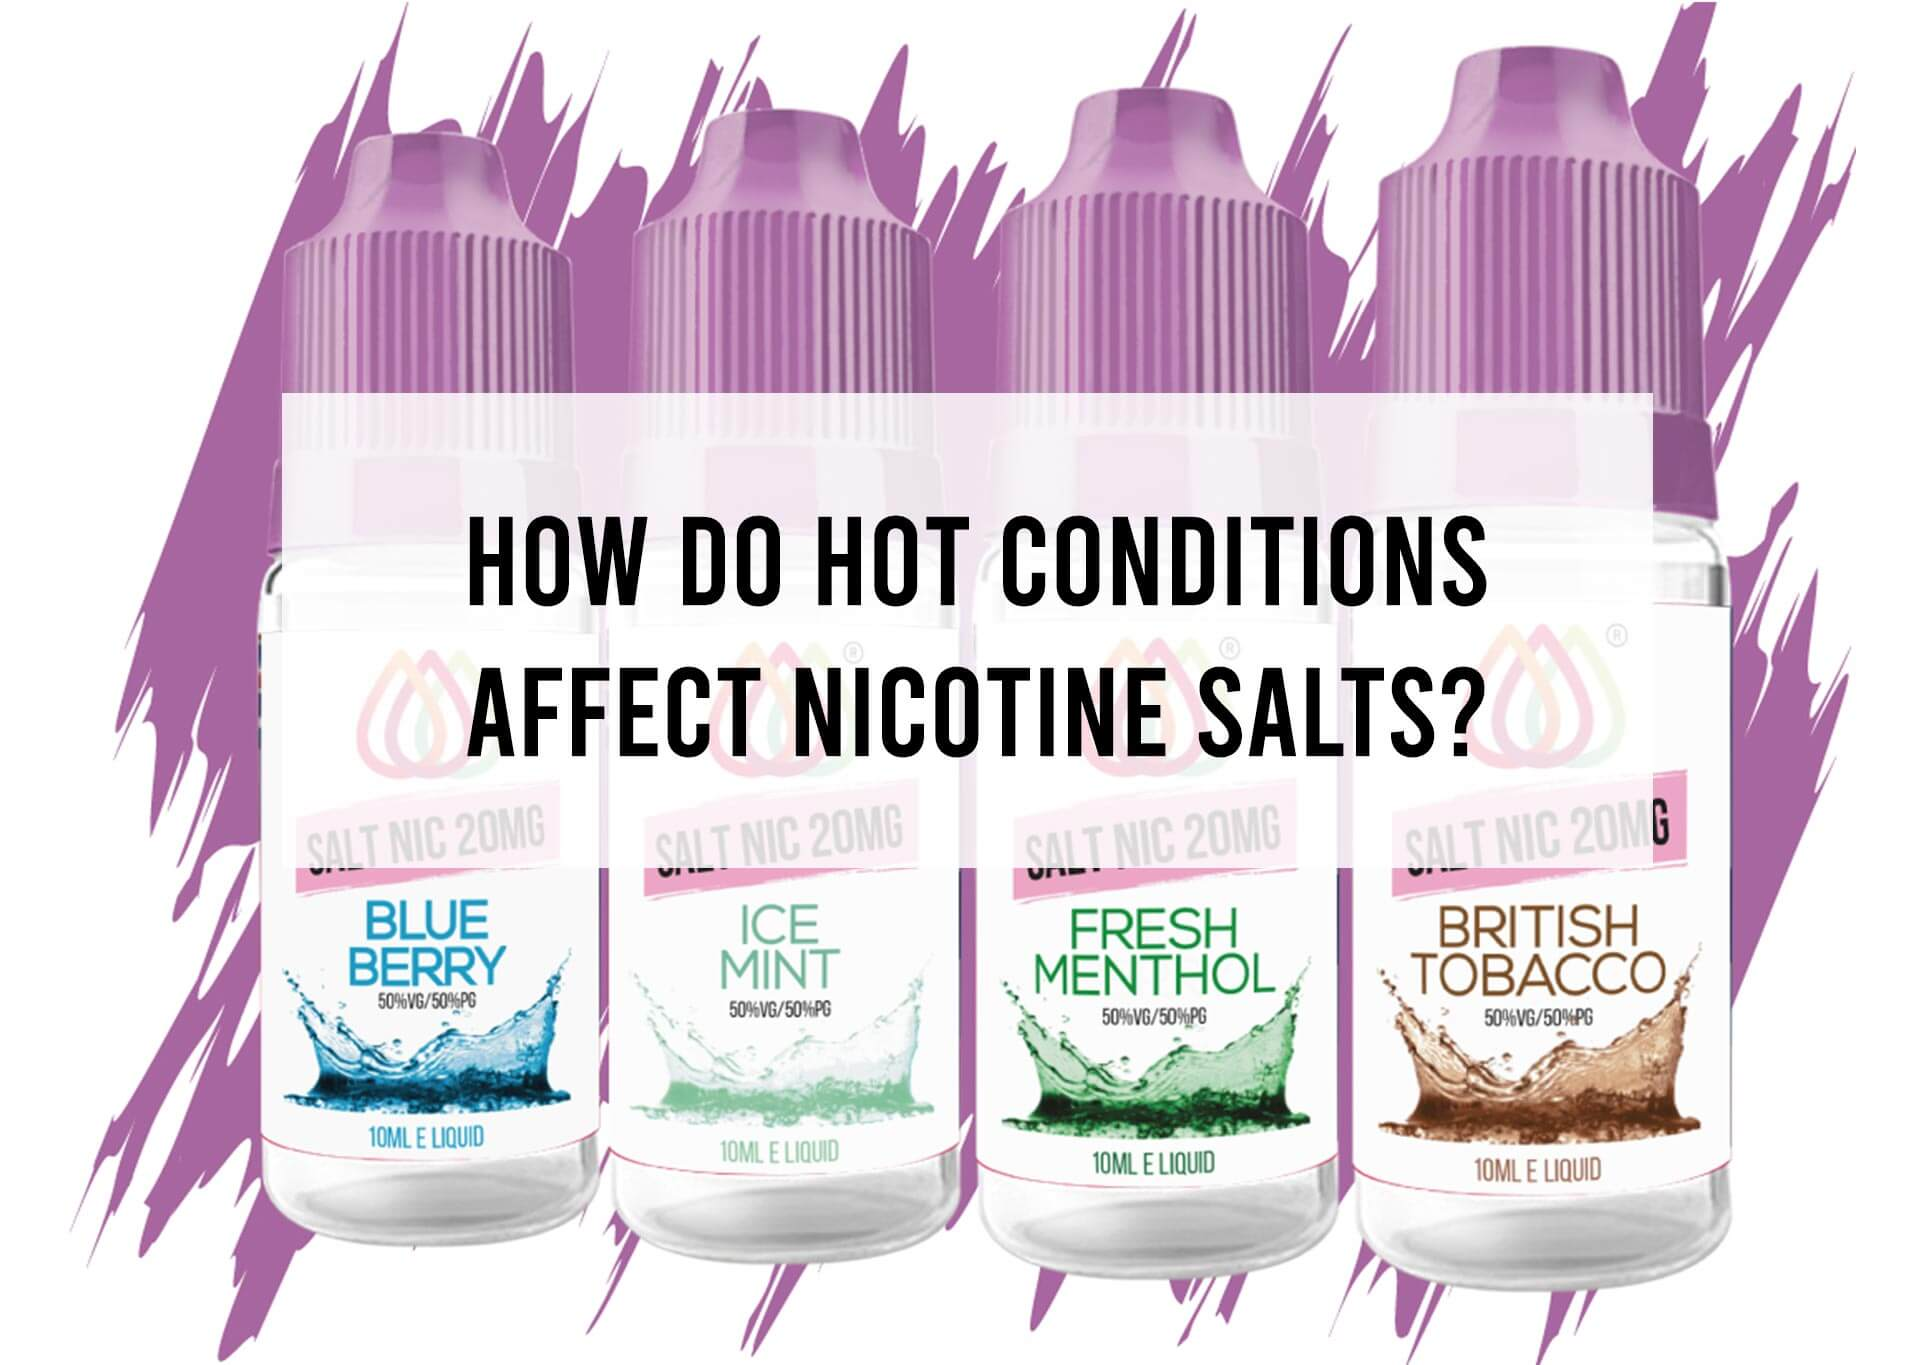 How-Do-Hot-Conditions-affect-Nicotine-Salts-